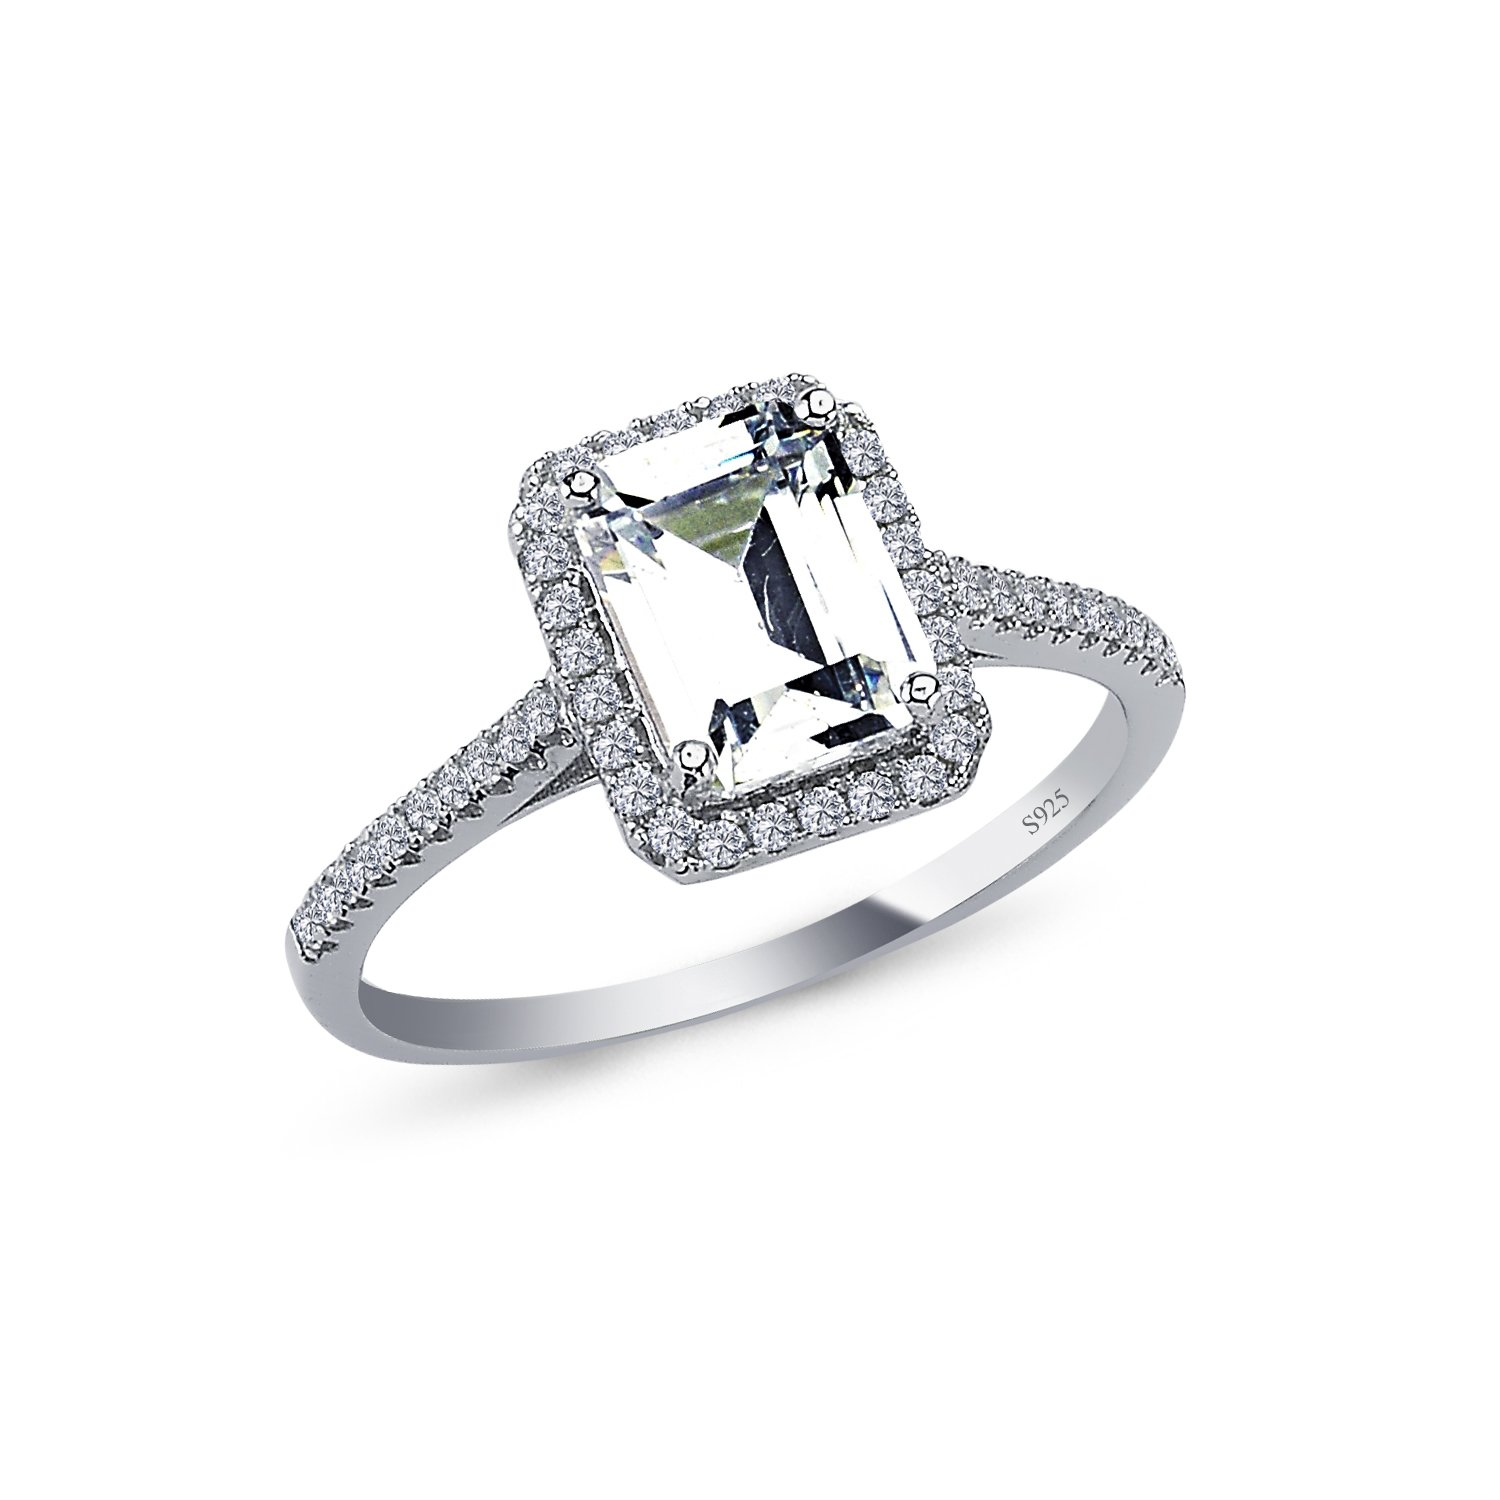 925 Solid Sterling Silver 10MM Cushion Halo AAAAA+ Gem Grade Quality EMERALD Cut Total 1.75 CARAT Bridal Sets Anniversary Promise Engagement Wedding CZ Ring Comfort Fit and Rhodium Plated